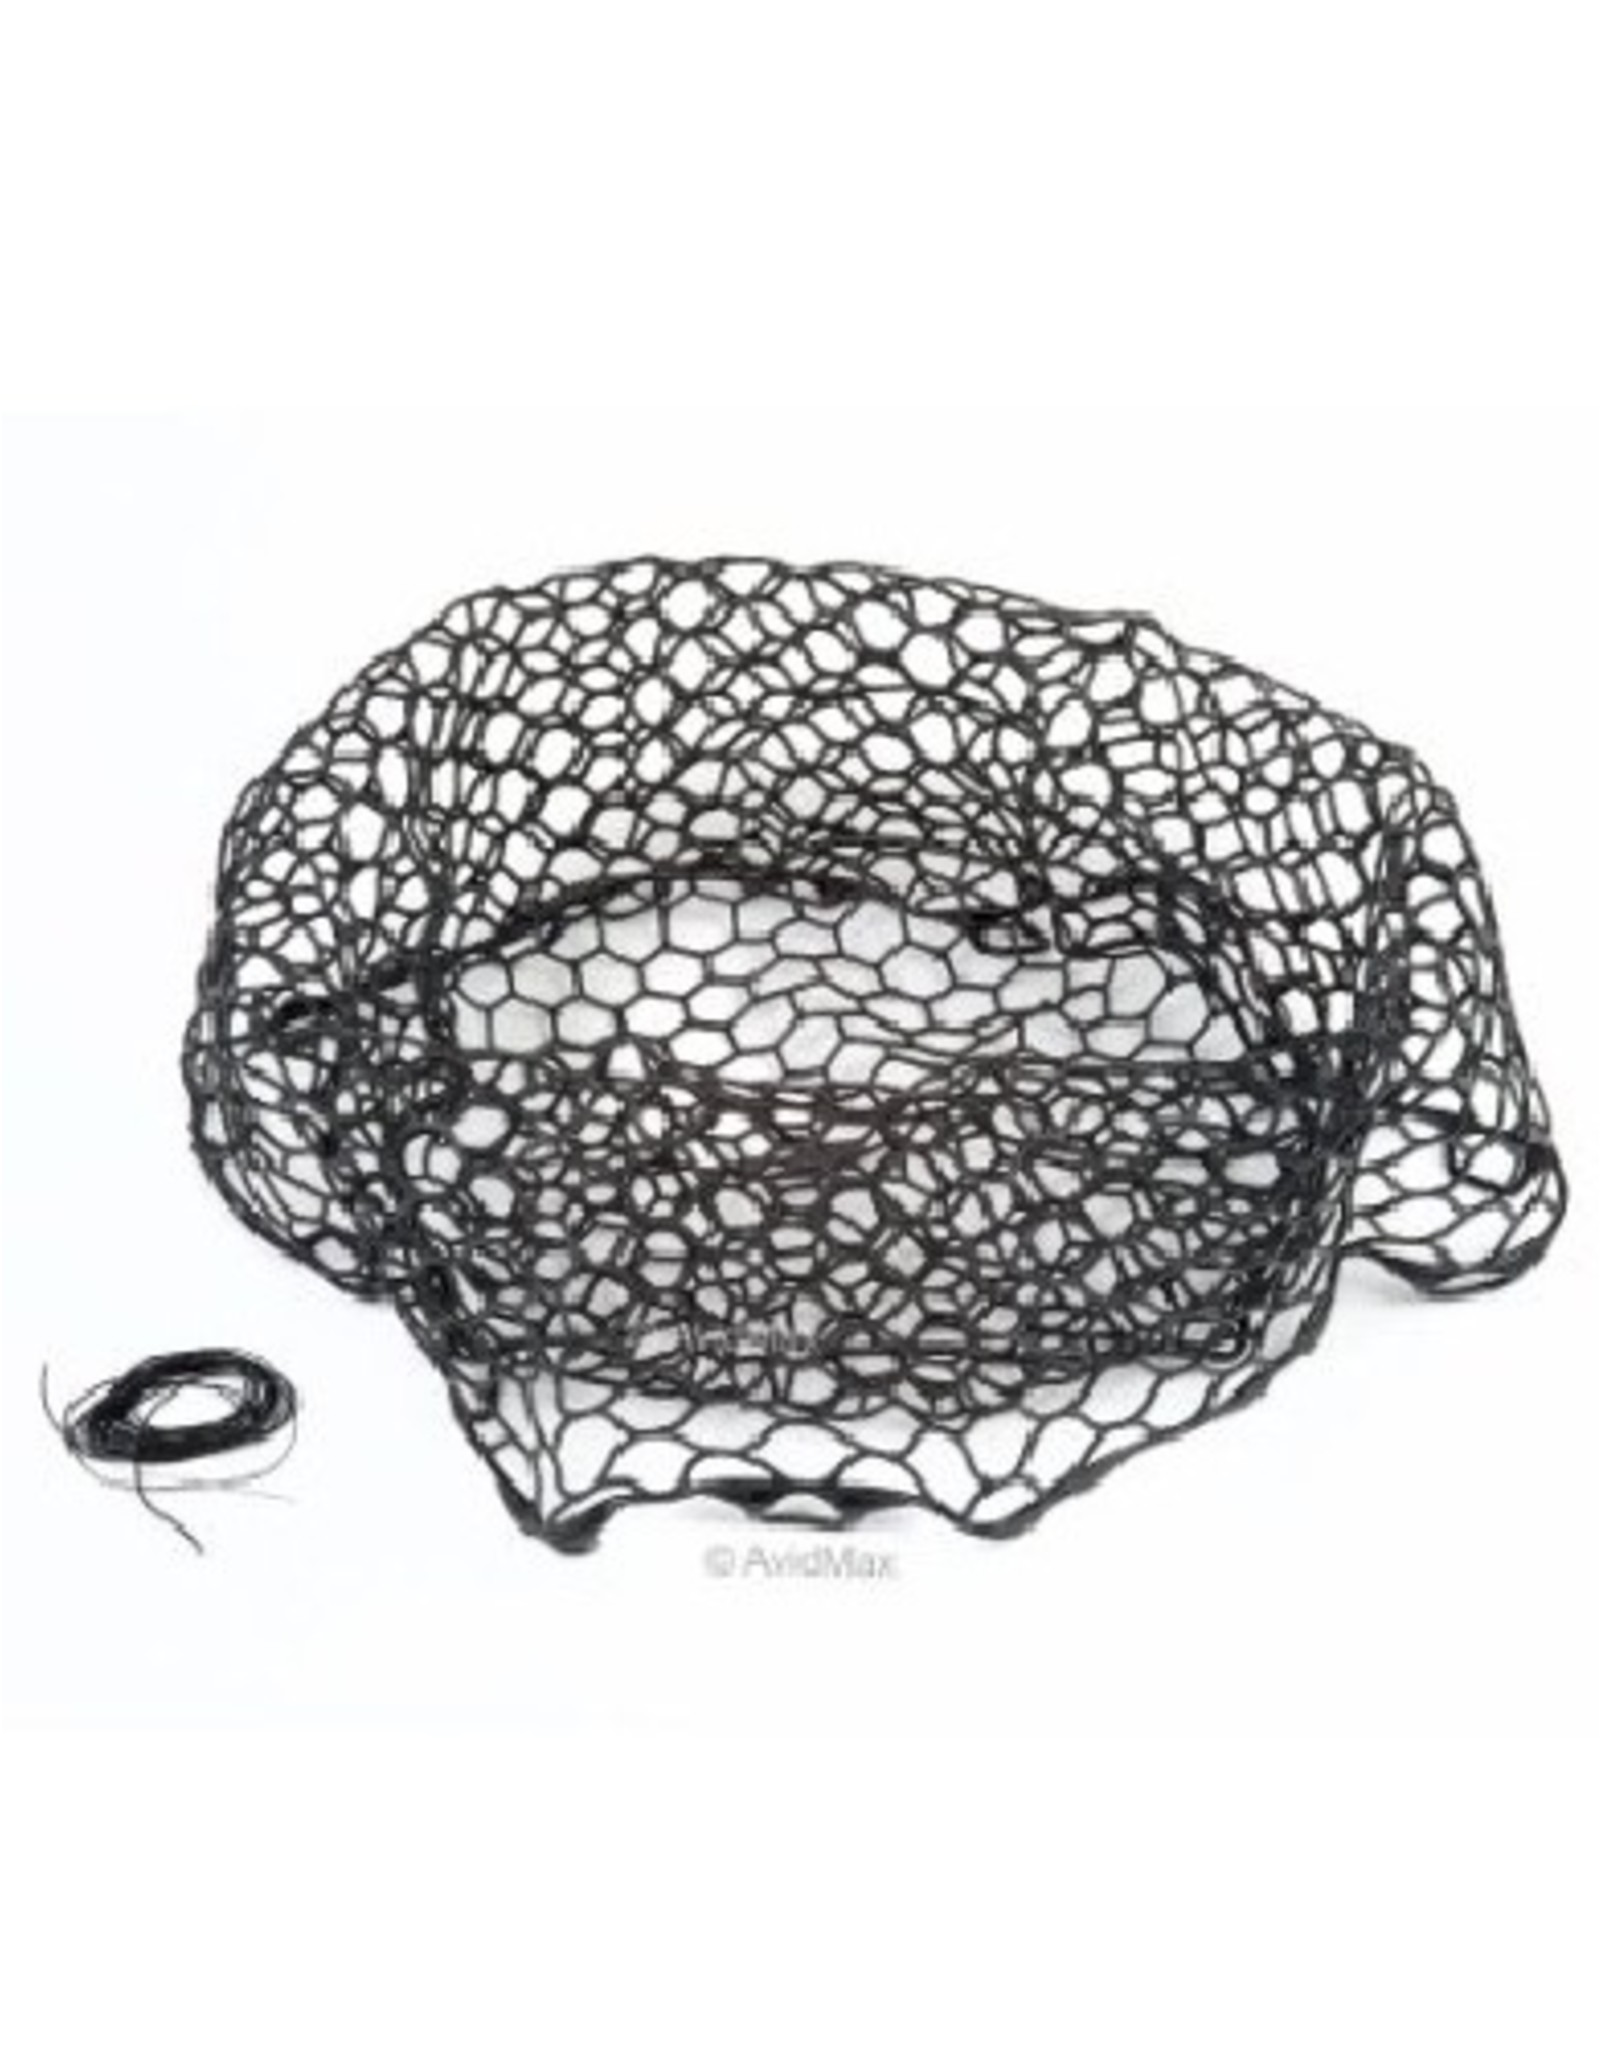 Fishpond Nomad Replacement Rubber Net…Black….XL Deep